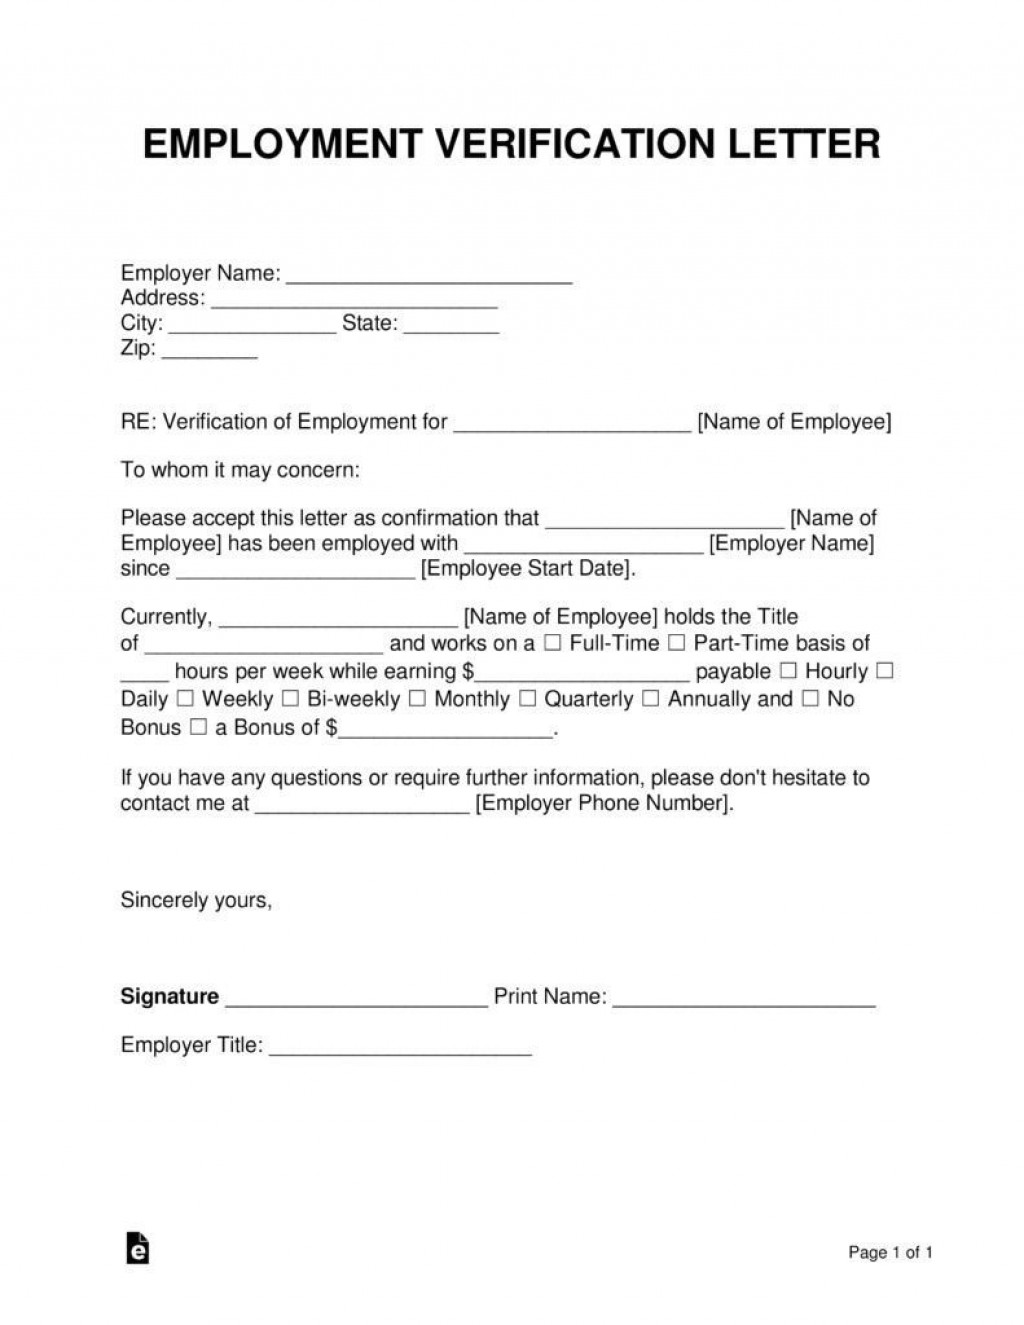 000 Formidable Confirmation Of Employment Letter Template Nz High Definition Large